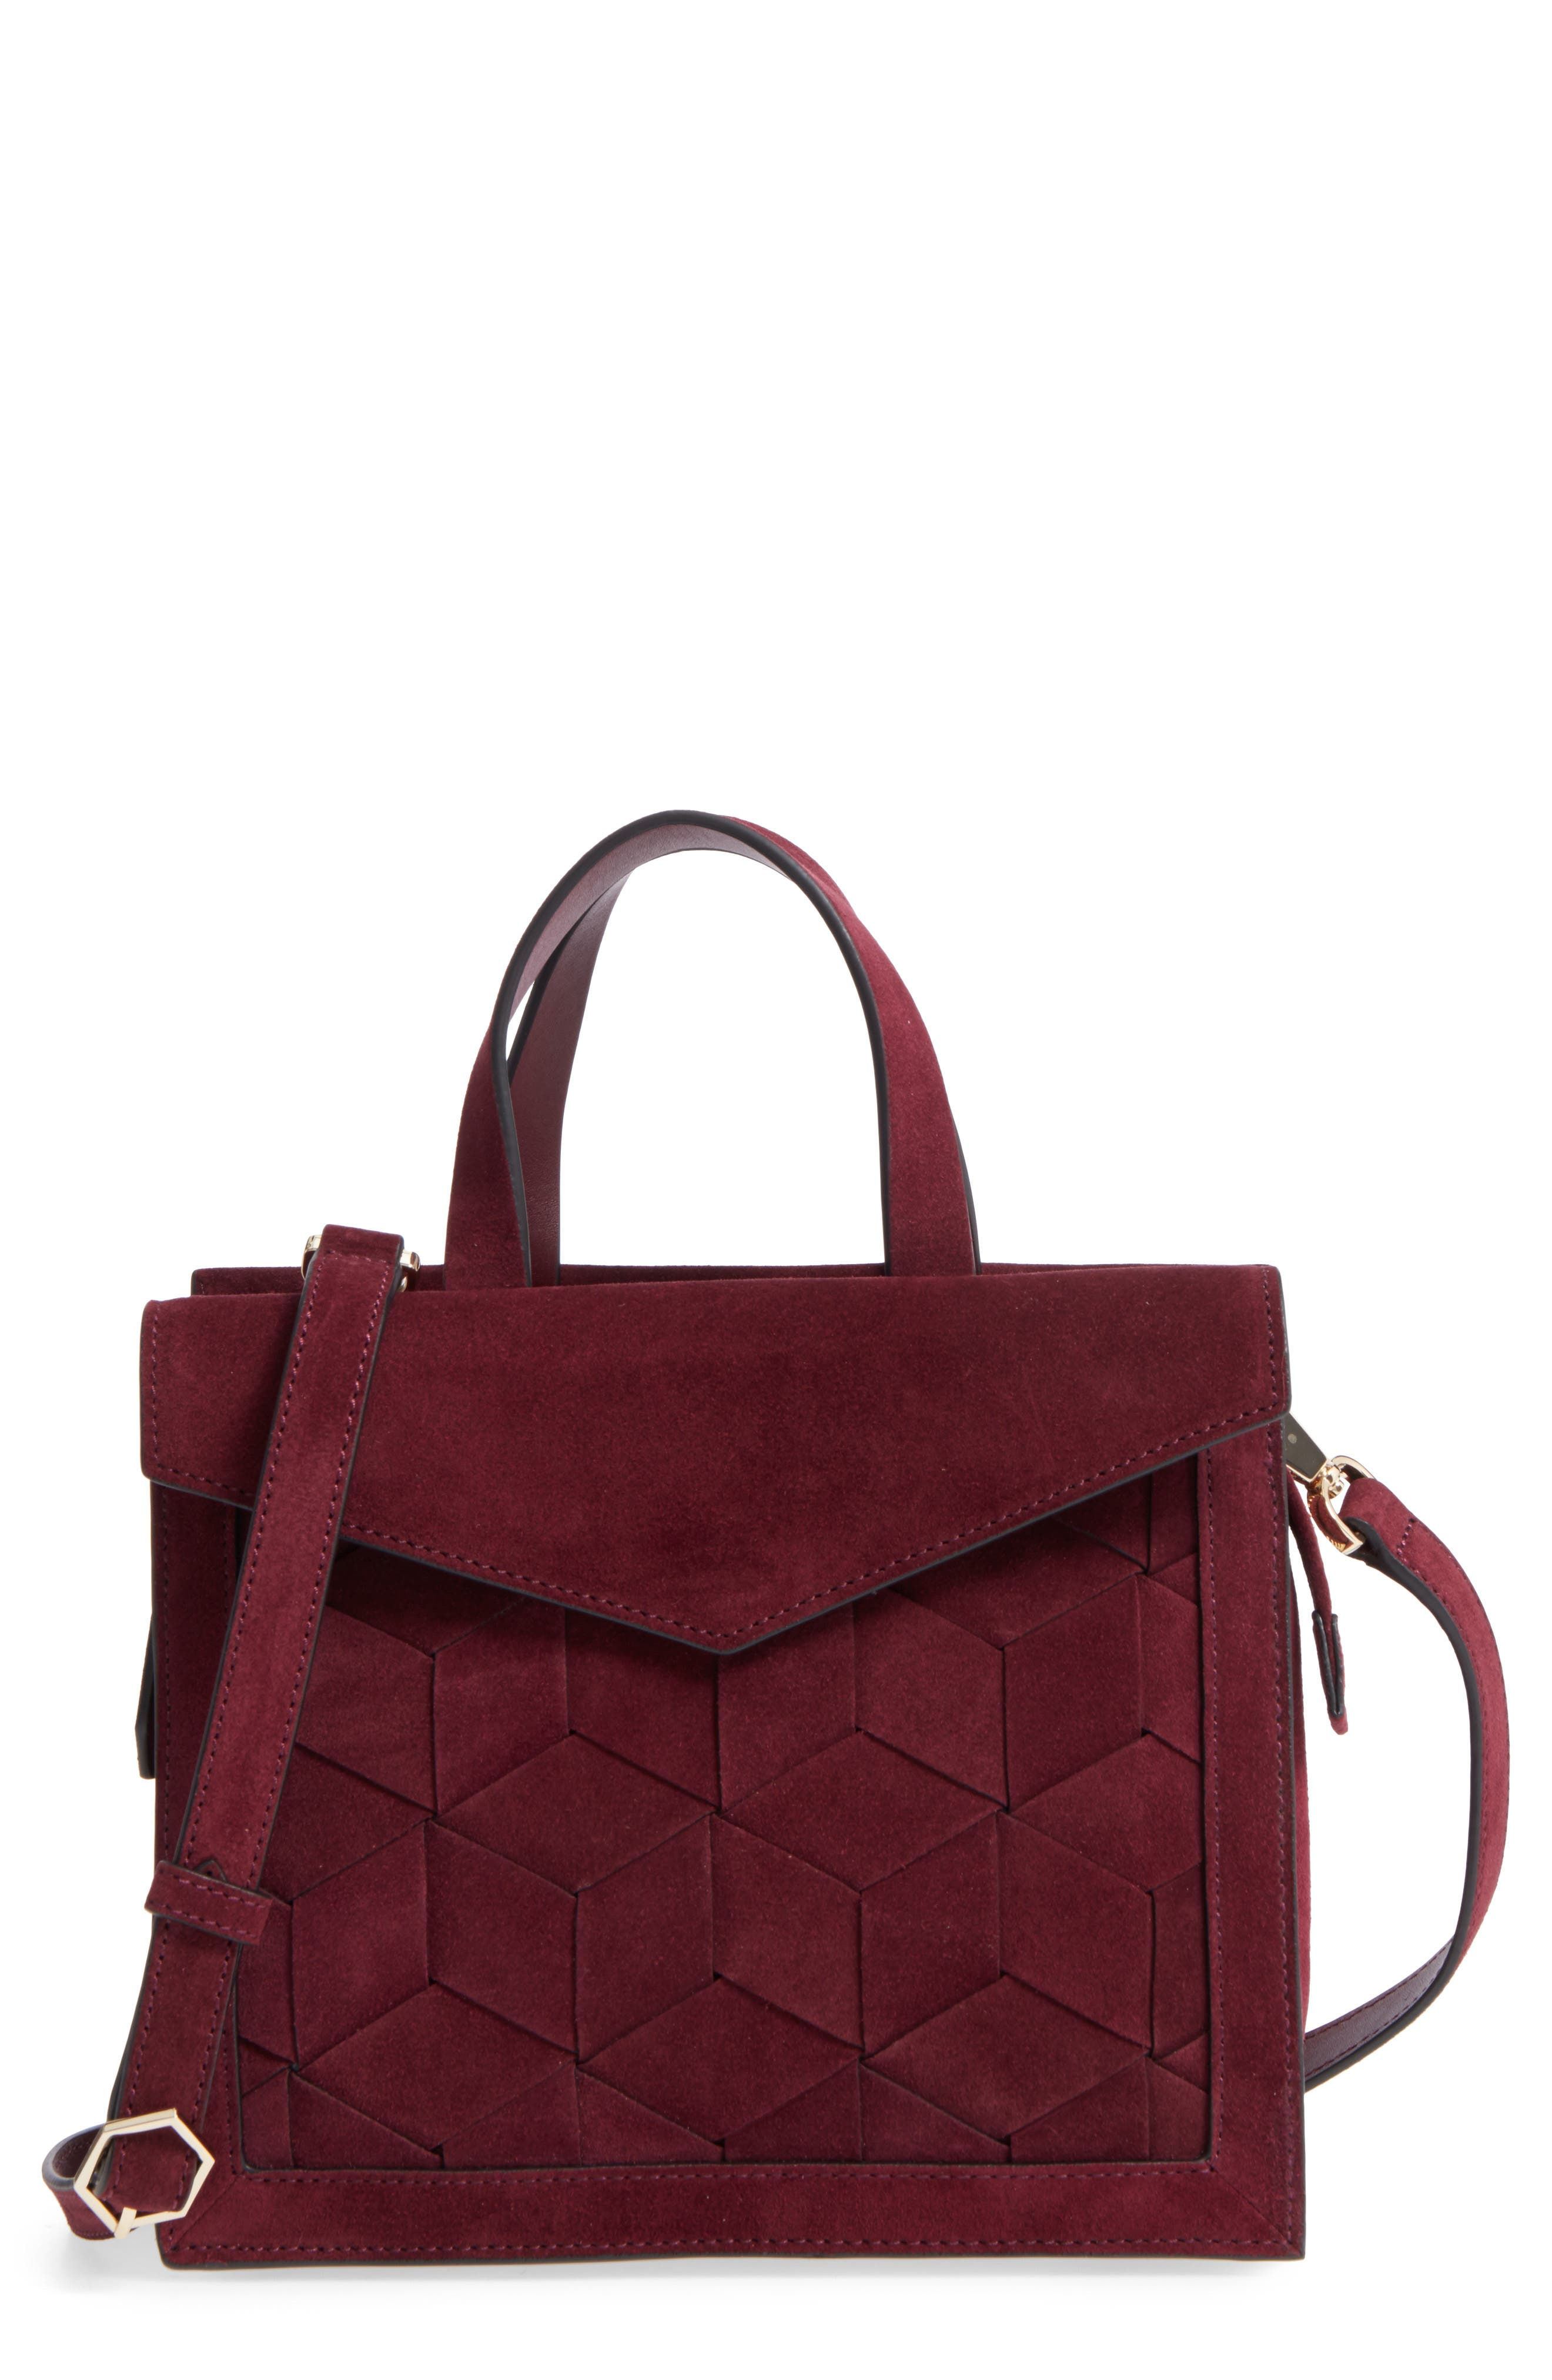 Alternate Image 1 Selected - WELDEN Small Voyager Leather Convertible Satchel